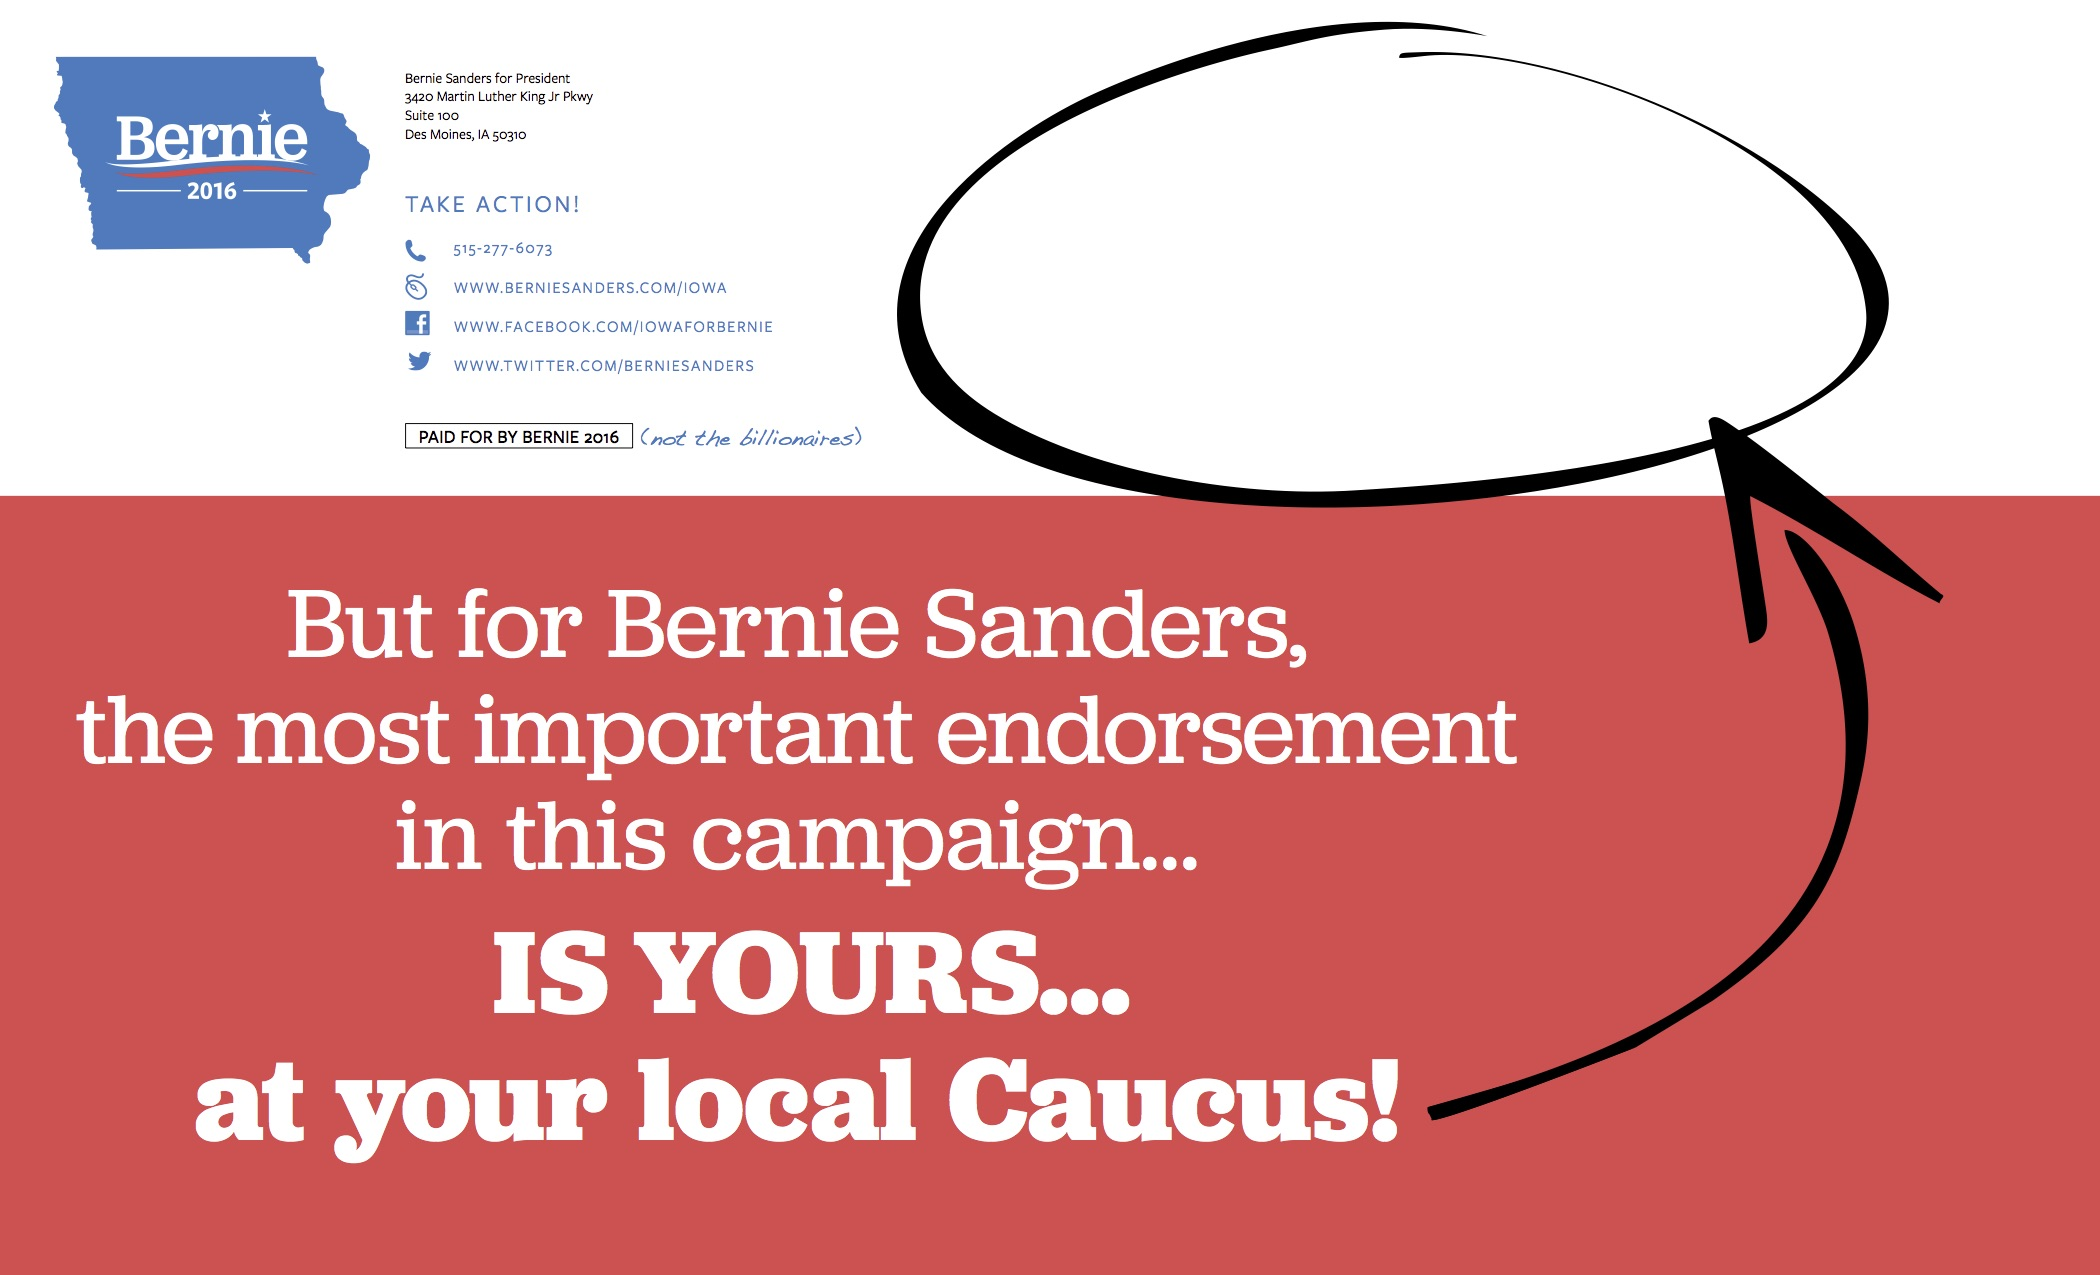 Bernie_Endorse_piece15_FD-REVISED2 - lowres.jpg